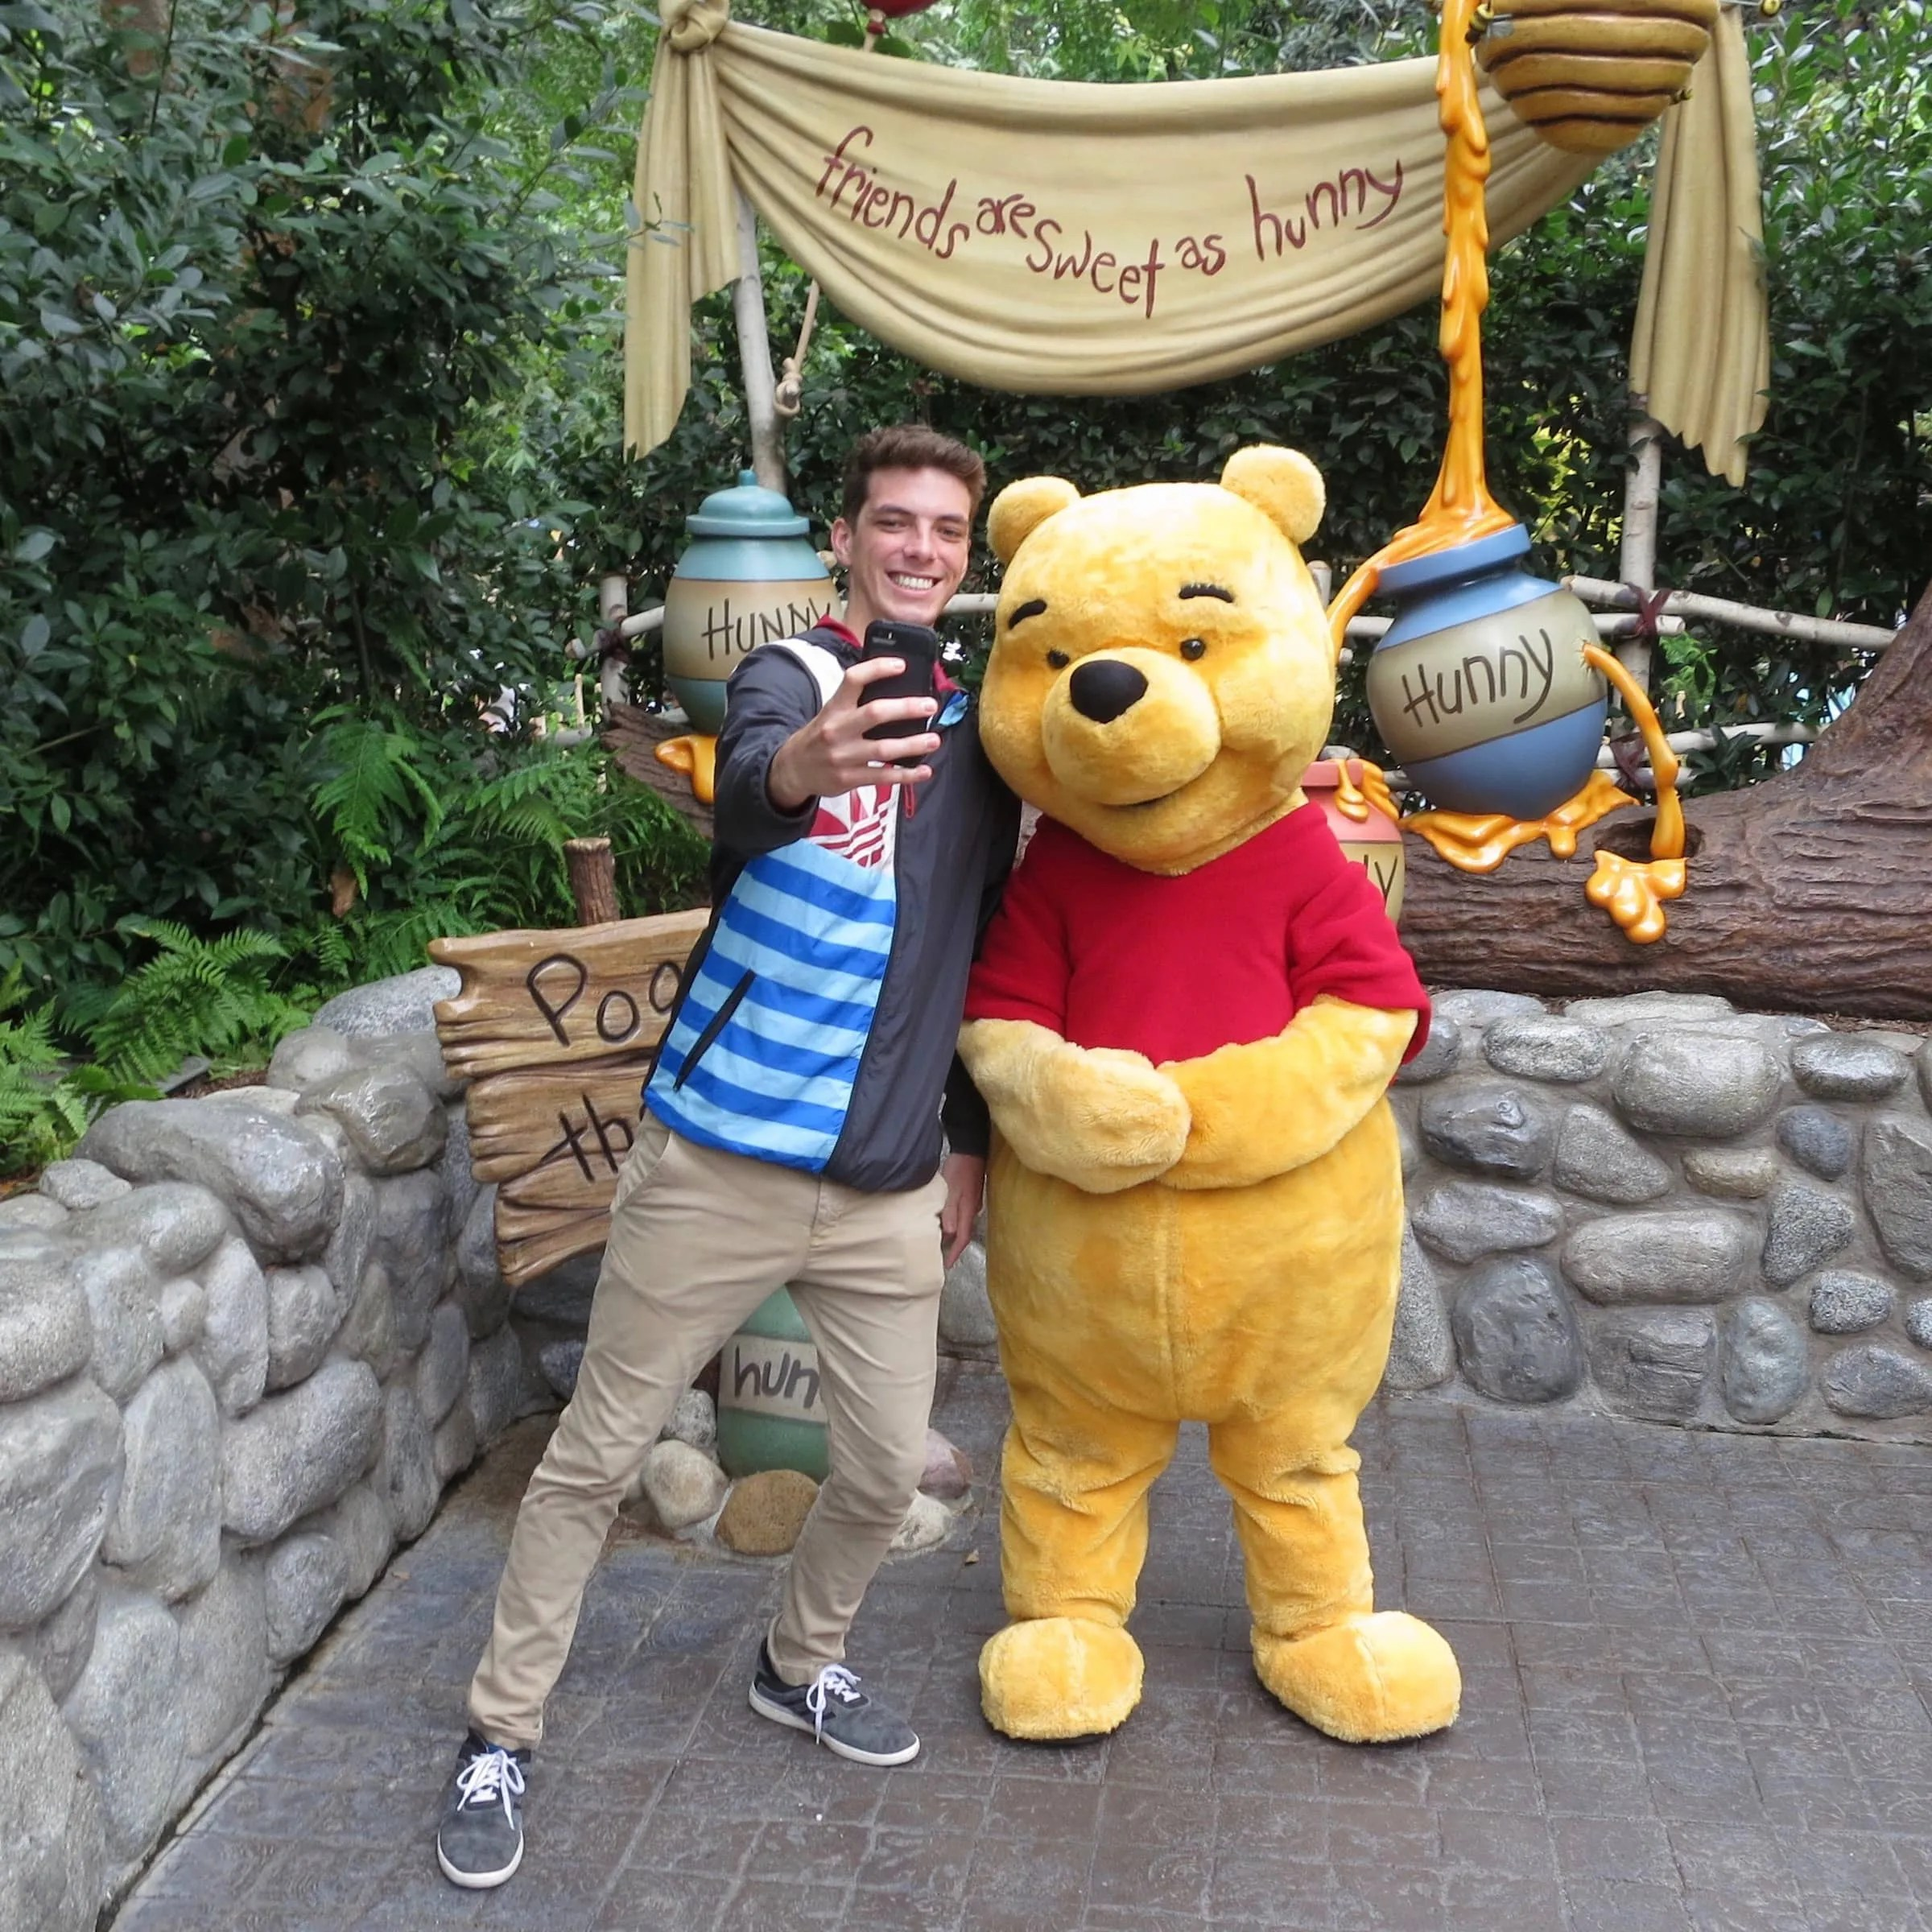 Jamison takes a selfie with Winnie the Pooh